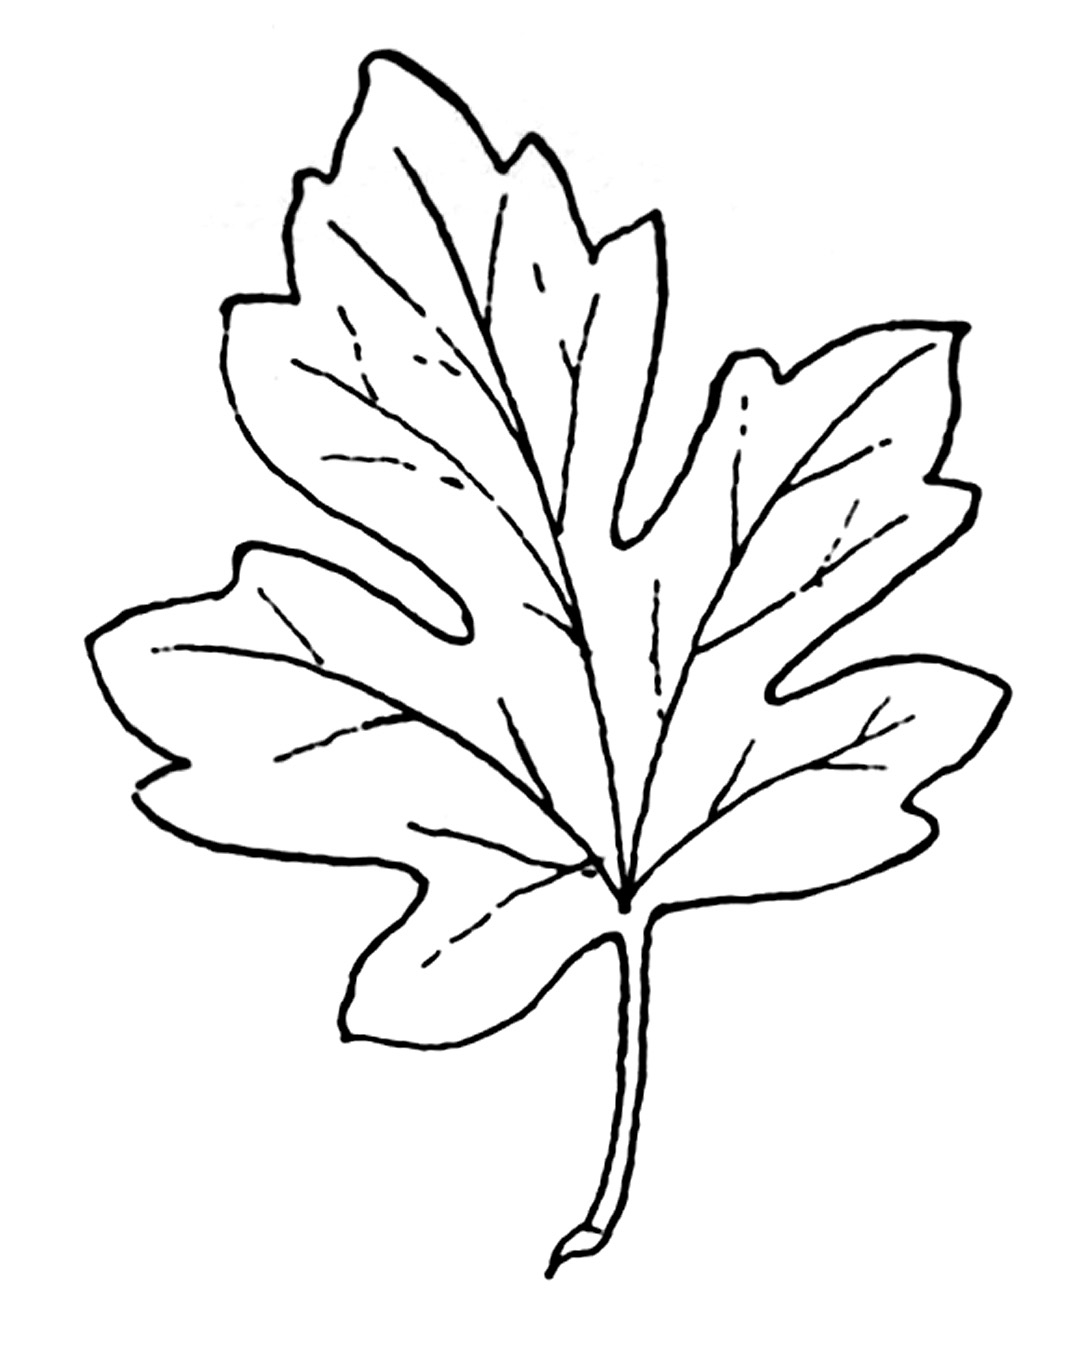 Fall black and white fall leaf clipart black and white free 2.